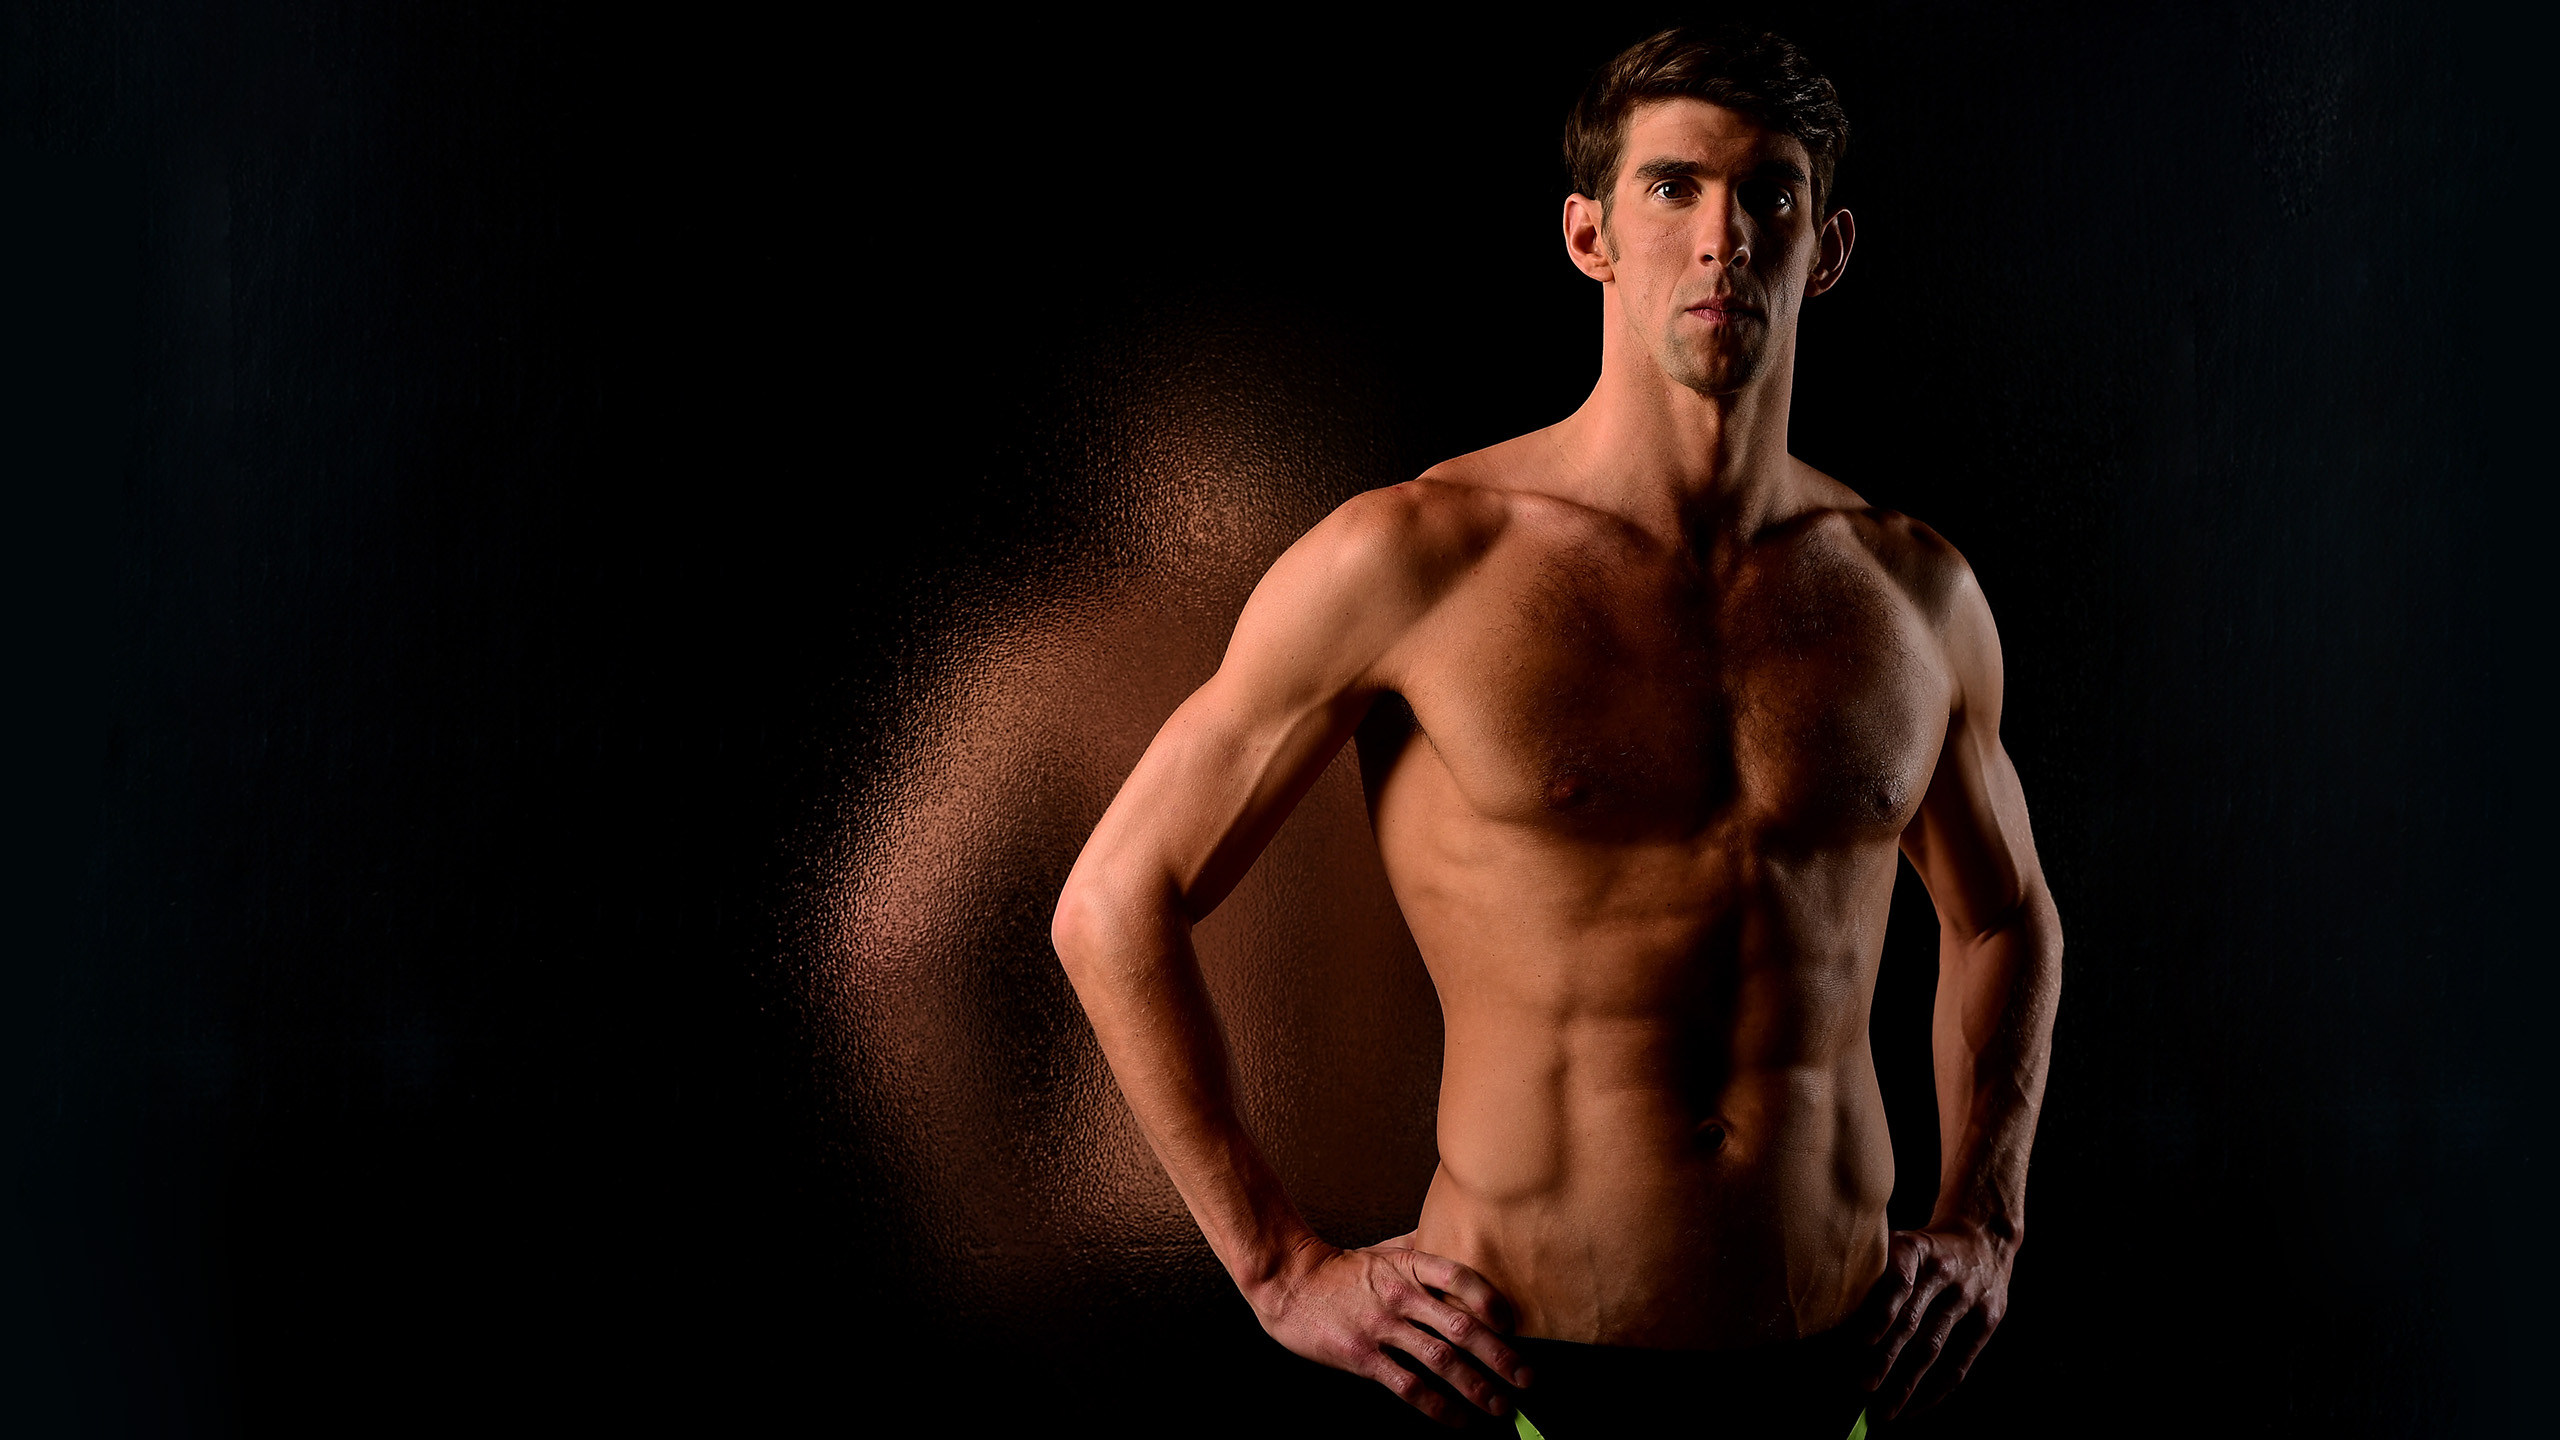 LOS ANGELES, CA - NOVEMBER 21:  Swimmer Michael Phelps poses for a portrait at the USOC Rio Olympics Shoot at Quixote Studios on November 21, 2015 in Los Angeles, California.  (Photo by Harry How/Getty Images)